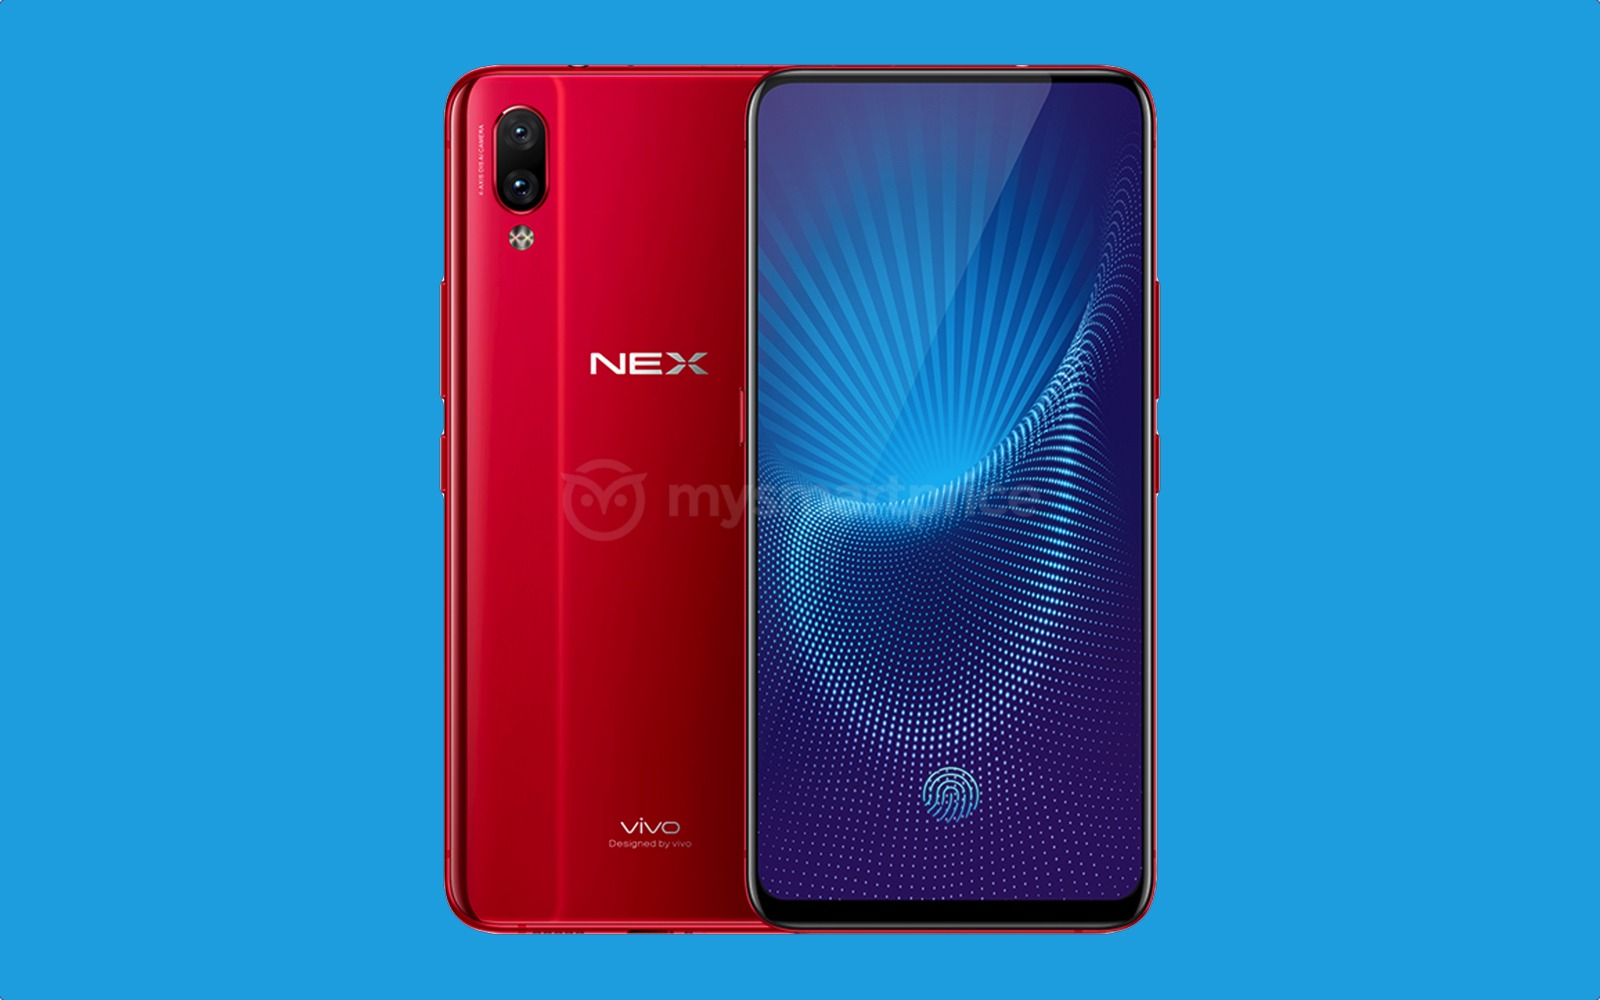 This is the Vivo Nex